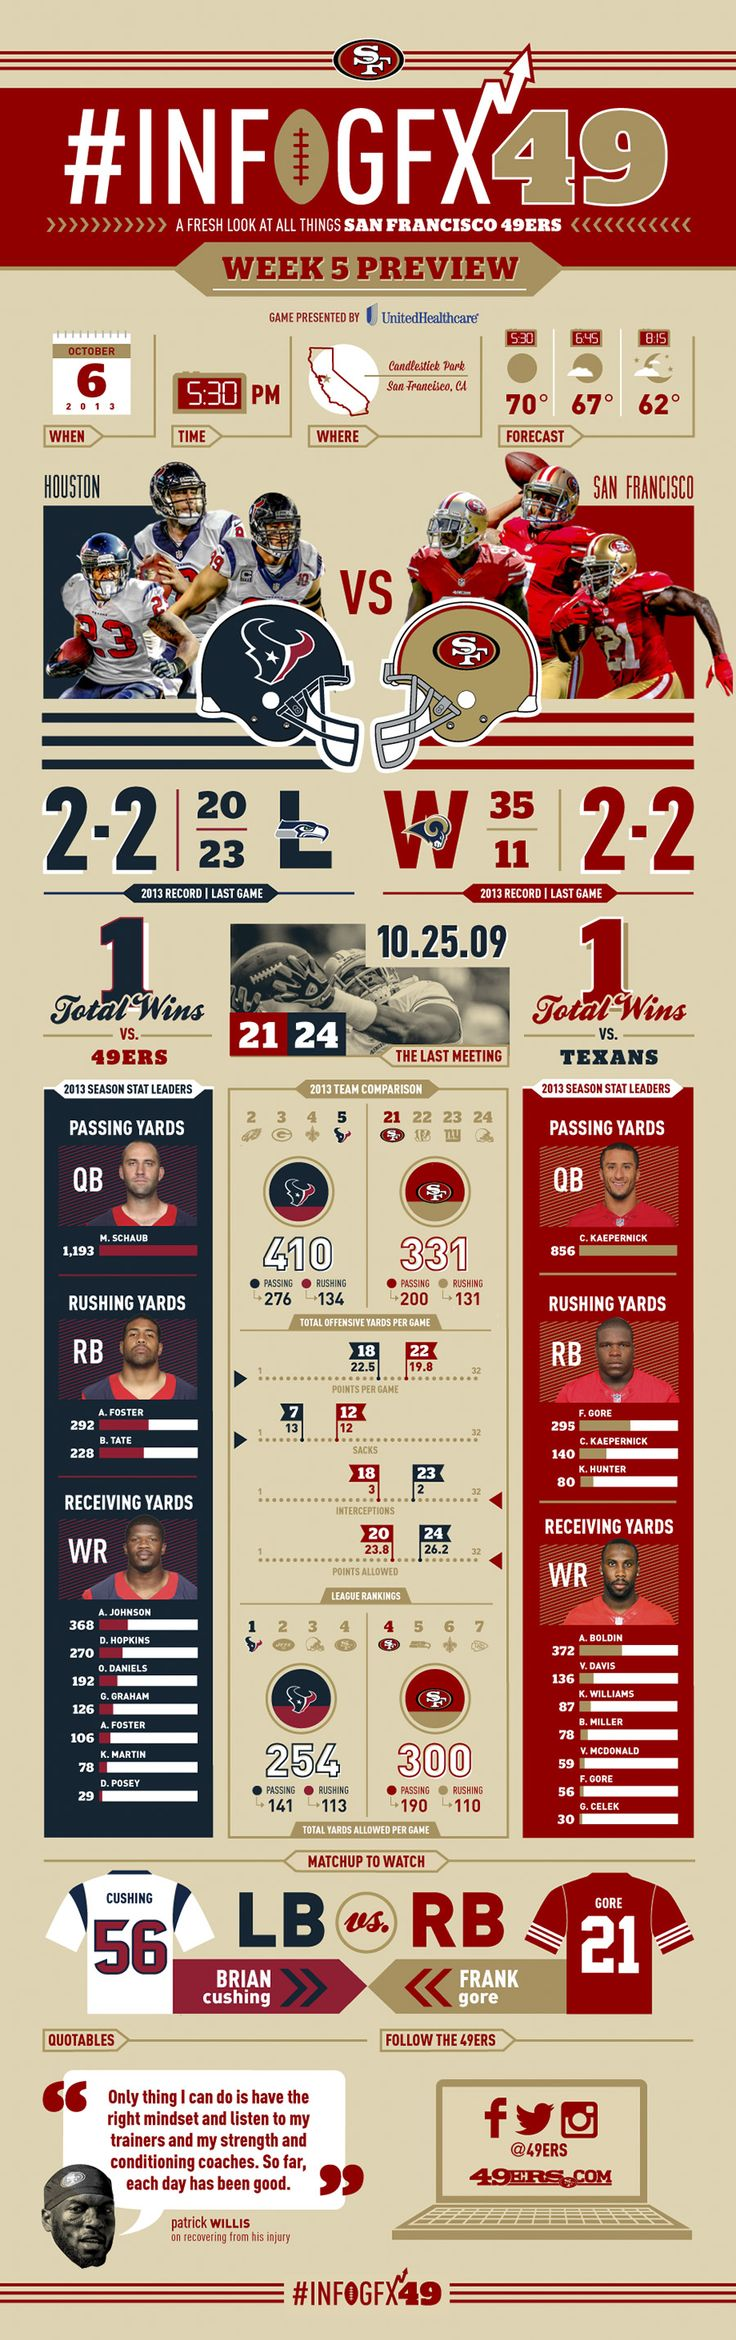 Infographic: 49ers vs. Texans Preview